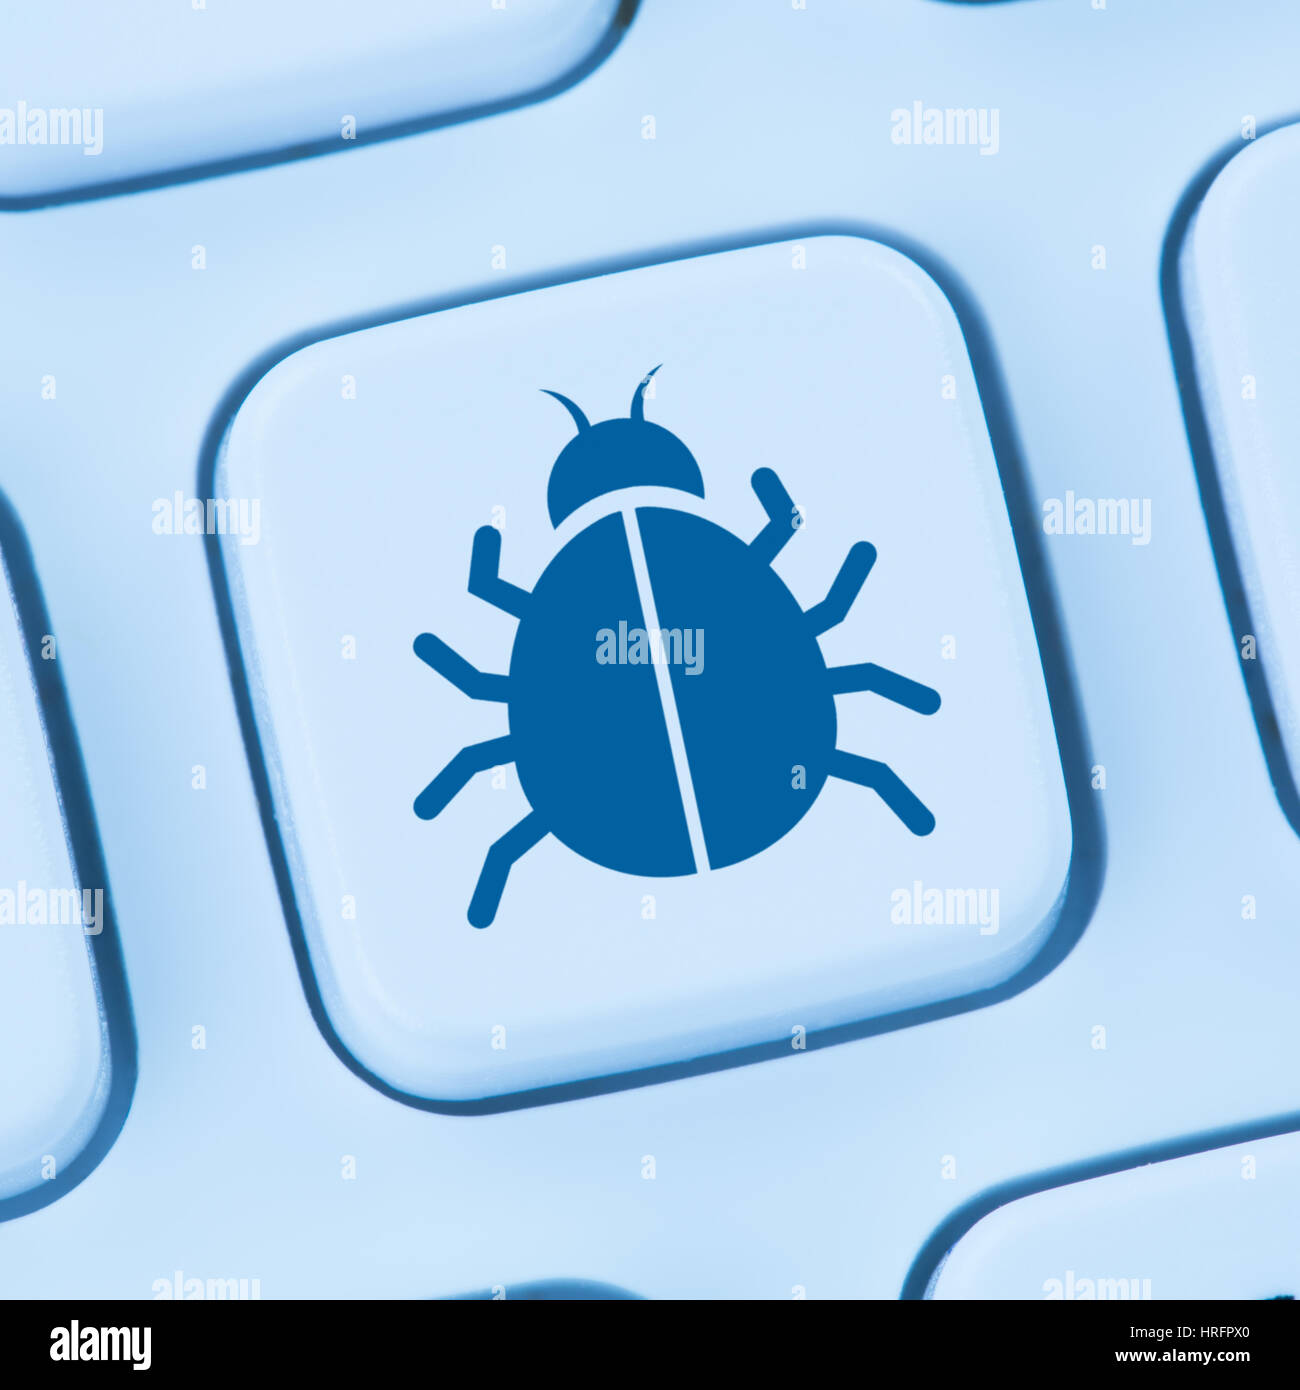 Computer virus Trojan network online security blue internet web keyboard - Stock Image